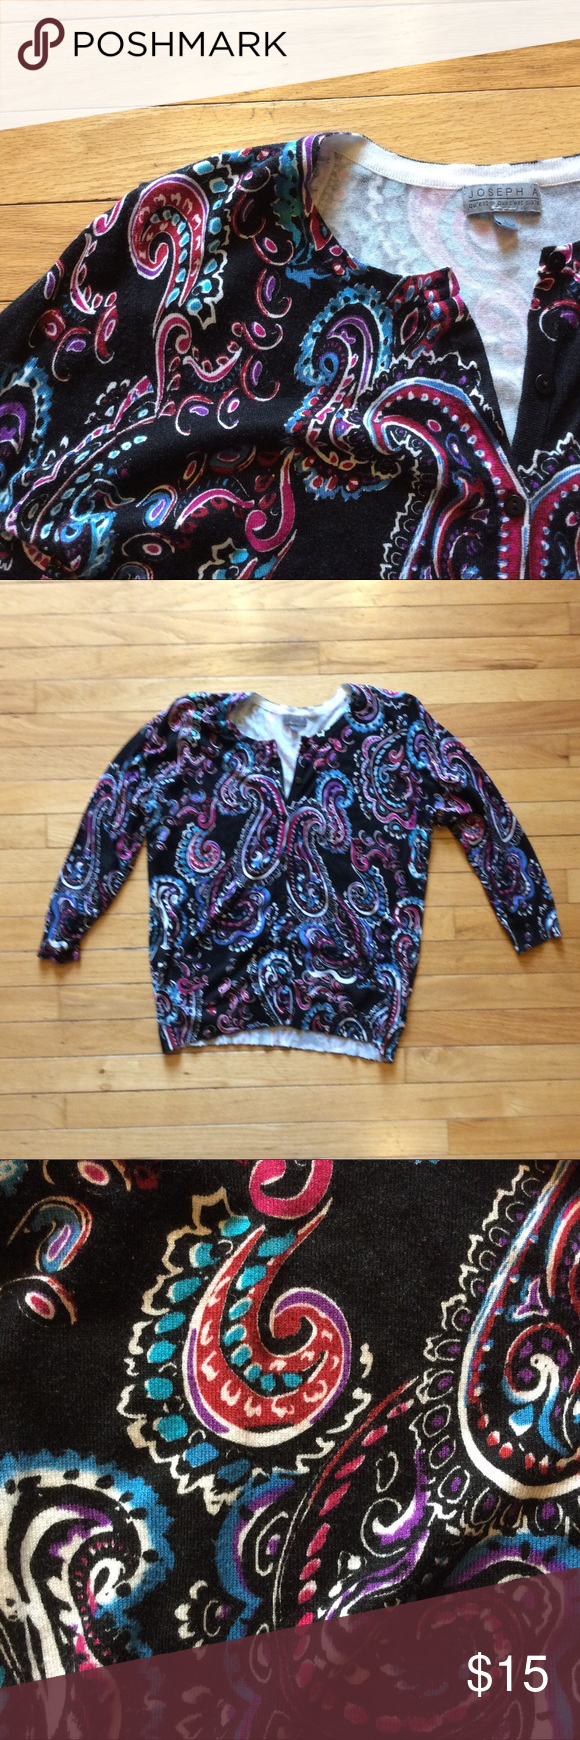 Paisley Print Cardigan Gorgeous Paisley print cardigan. I LOVE this but the fit is a little tight for my liking. I am a L/XL depending on the brand. EUC. Black with beautiful jewel tones. Sweaters Cardigans